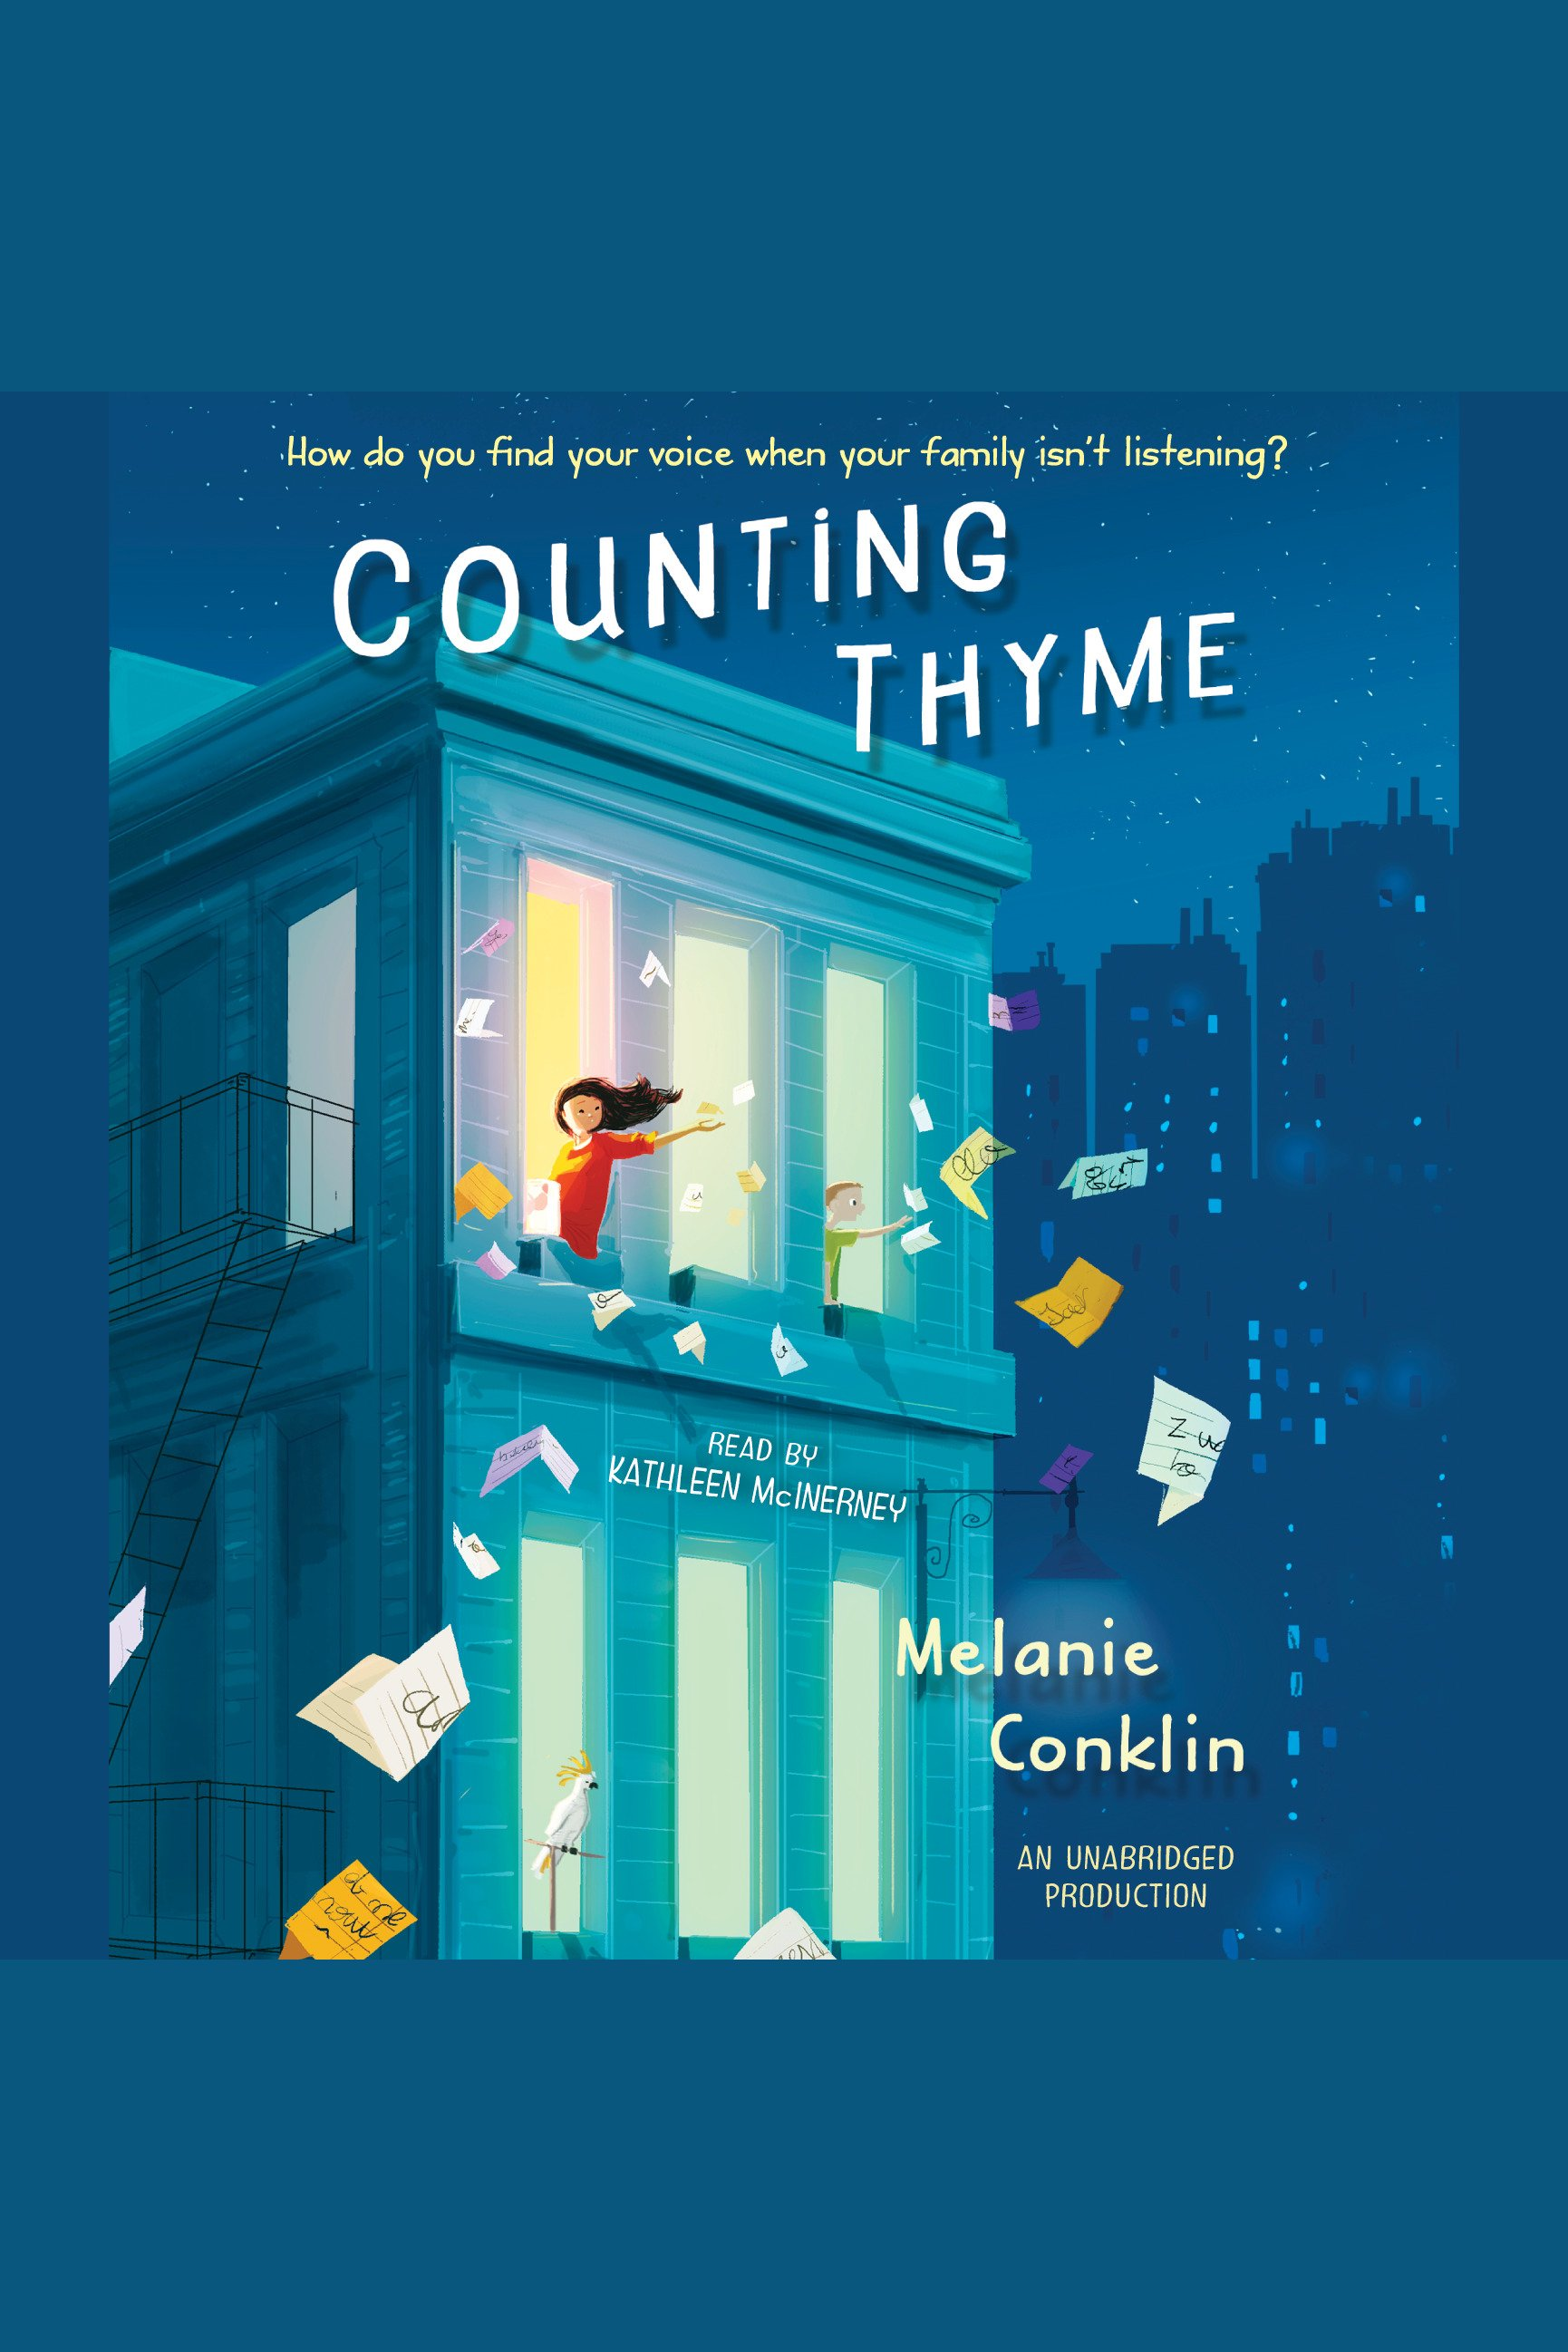 Counting thyme cover image